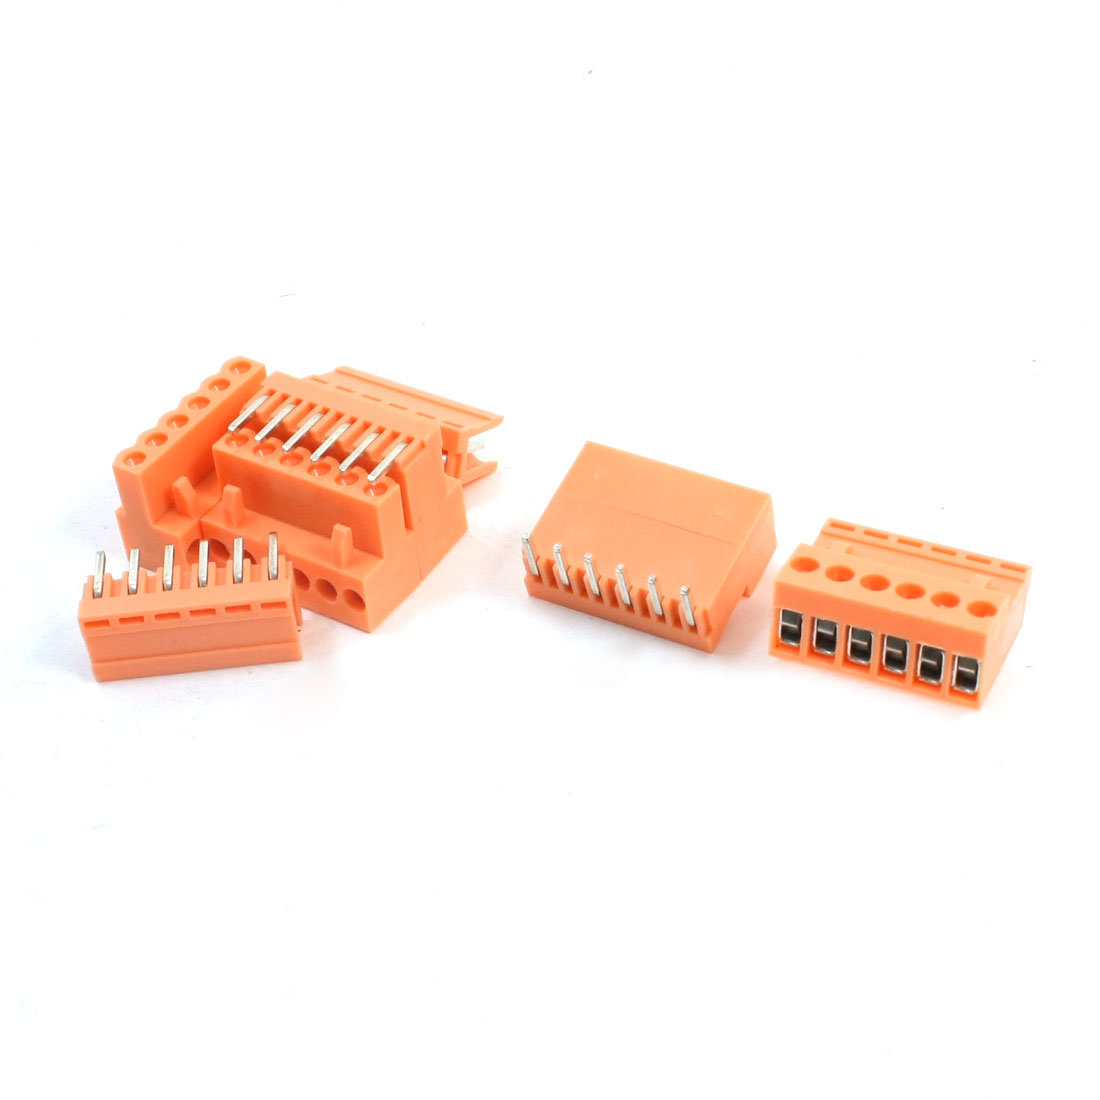 5 Pcs AC 300V 10A 6-Pin 3-Position Pluggable Type PCB Mounting Orange Plastic Screw Terminal Barrier Block Connector